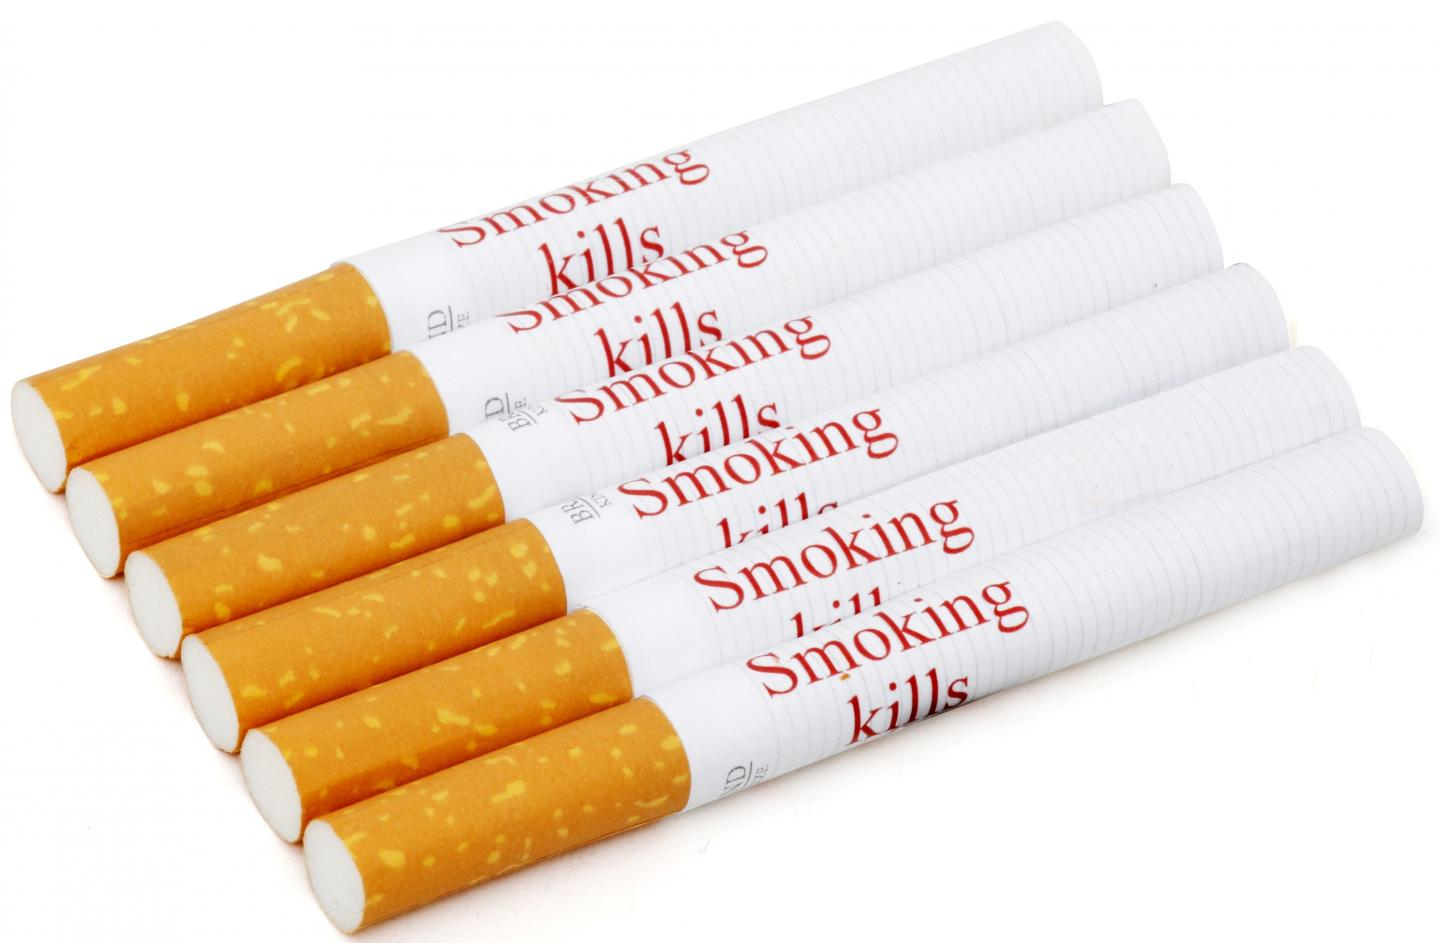 Cigarettes Market in Sudan to Witness Huge Growth by 2025 | Philip Morris, Blue Nile, Haggar Cigarette